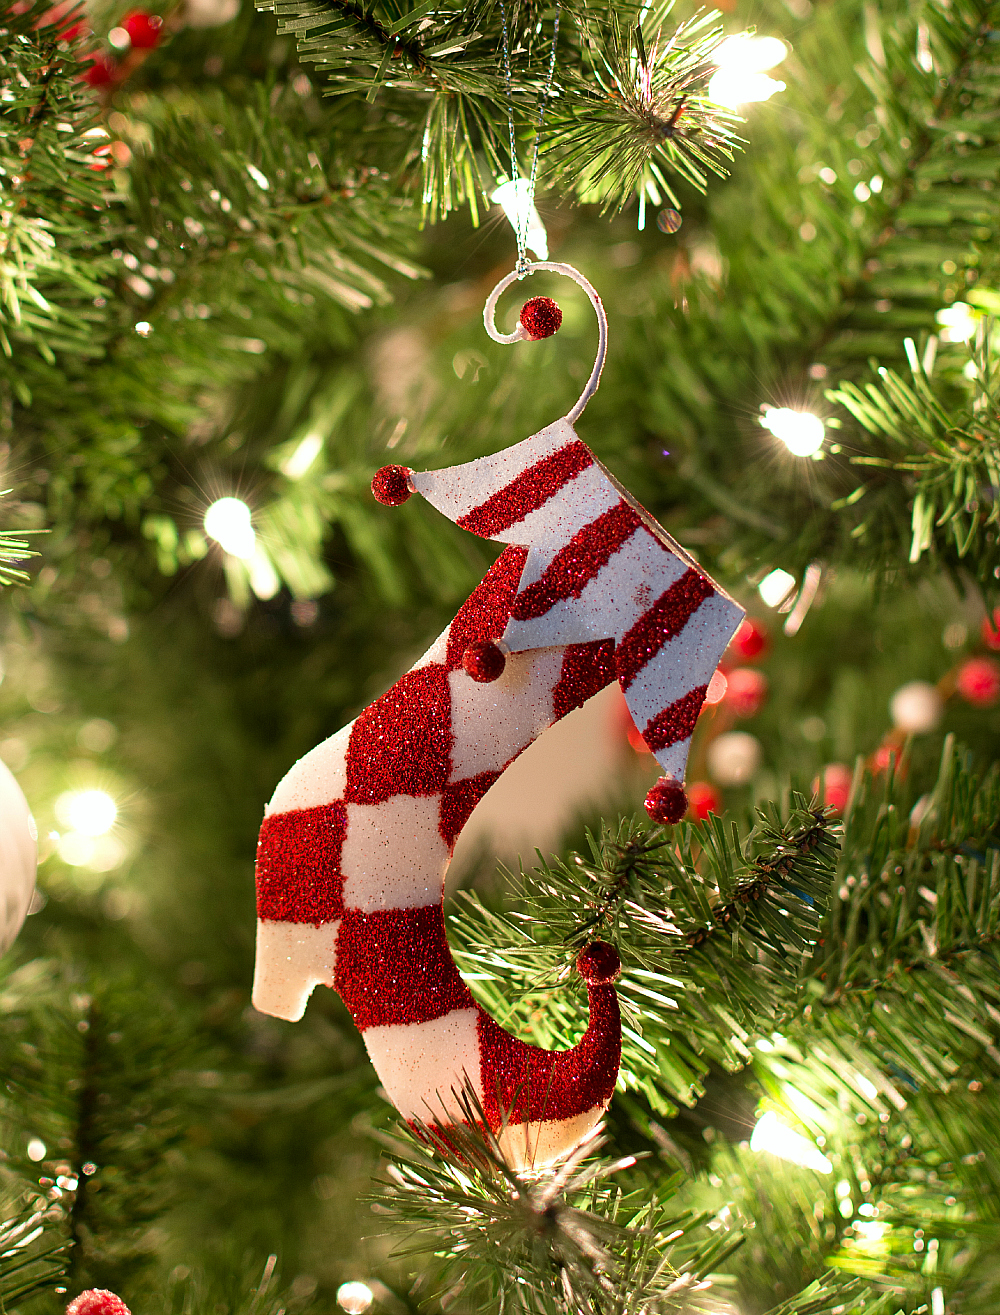 Christmas-Tree-Red-White-Ornaments (6 of 17) 2